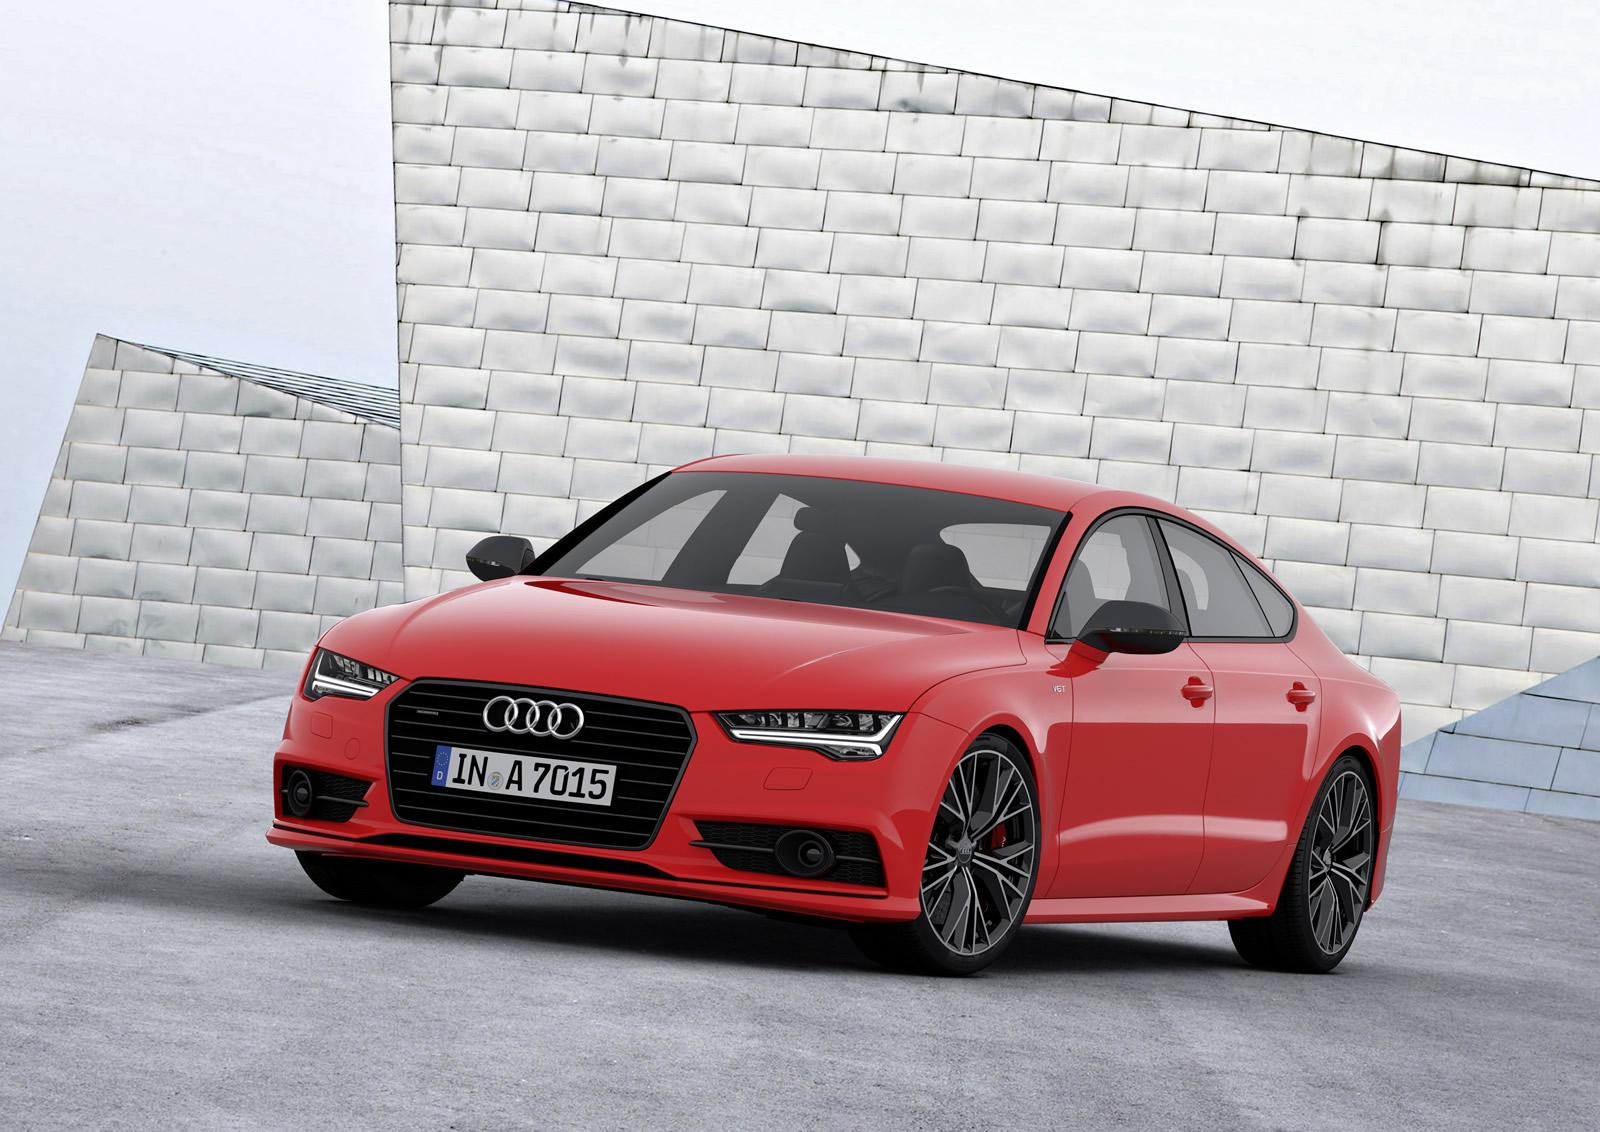 2017 audi a6 and a7 competition coming to the us with 340 hp diff and body kit autoevolution. Black Bedroom Furniture Sets. Home Design Ideas